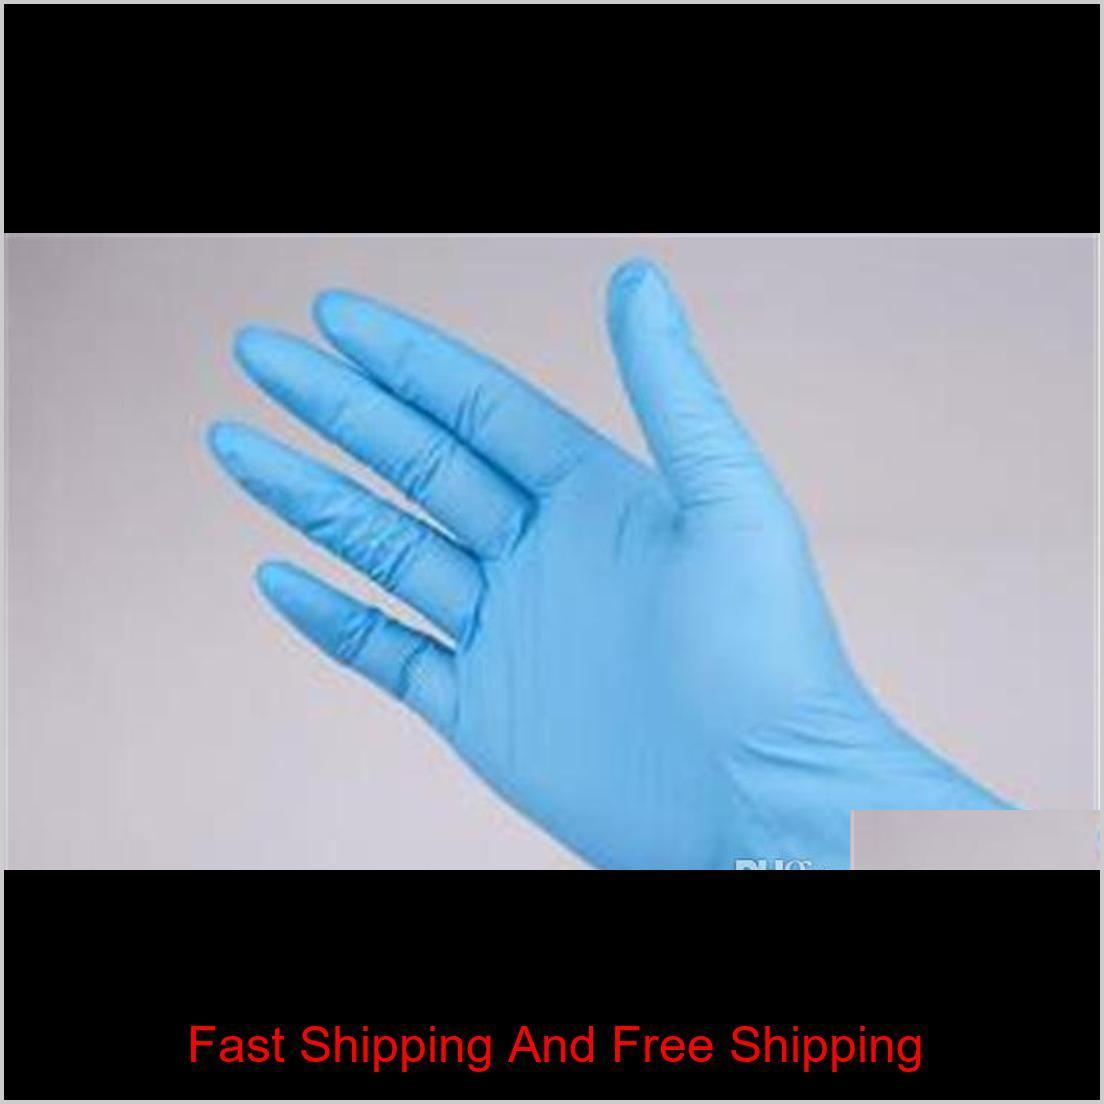 2020 New Disposable Nitrile latex gloves 3 kinds of specifications optional Anti-skid anti-acid gloves B grade rubber glove Cleaning